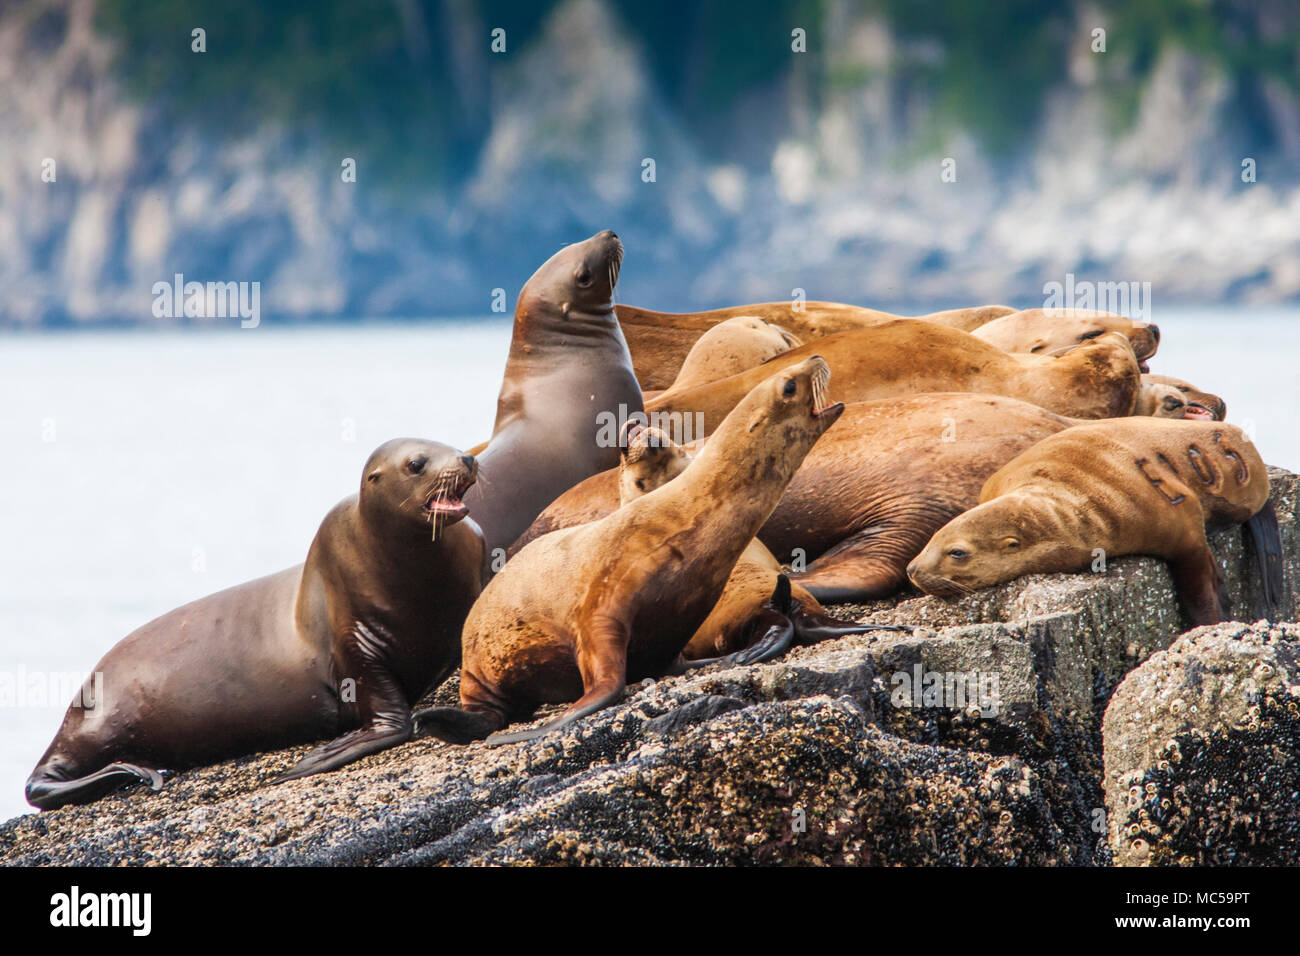 Stellar Sea Lions (Eumetopias jubatus) in Kenai Fjords National Park in Alaska. - Stock Image